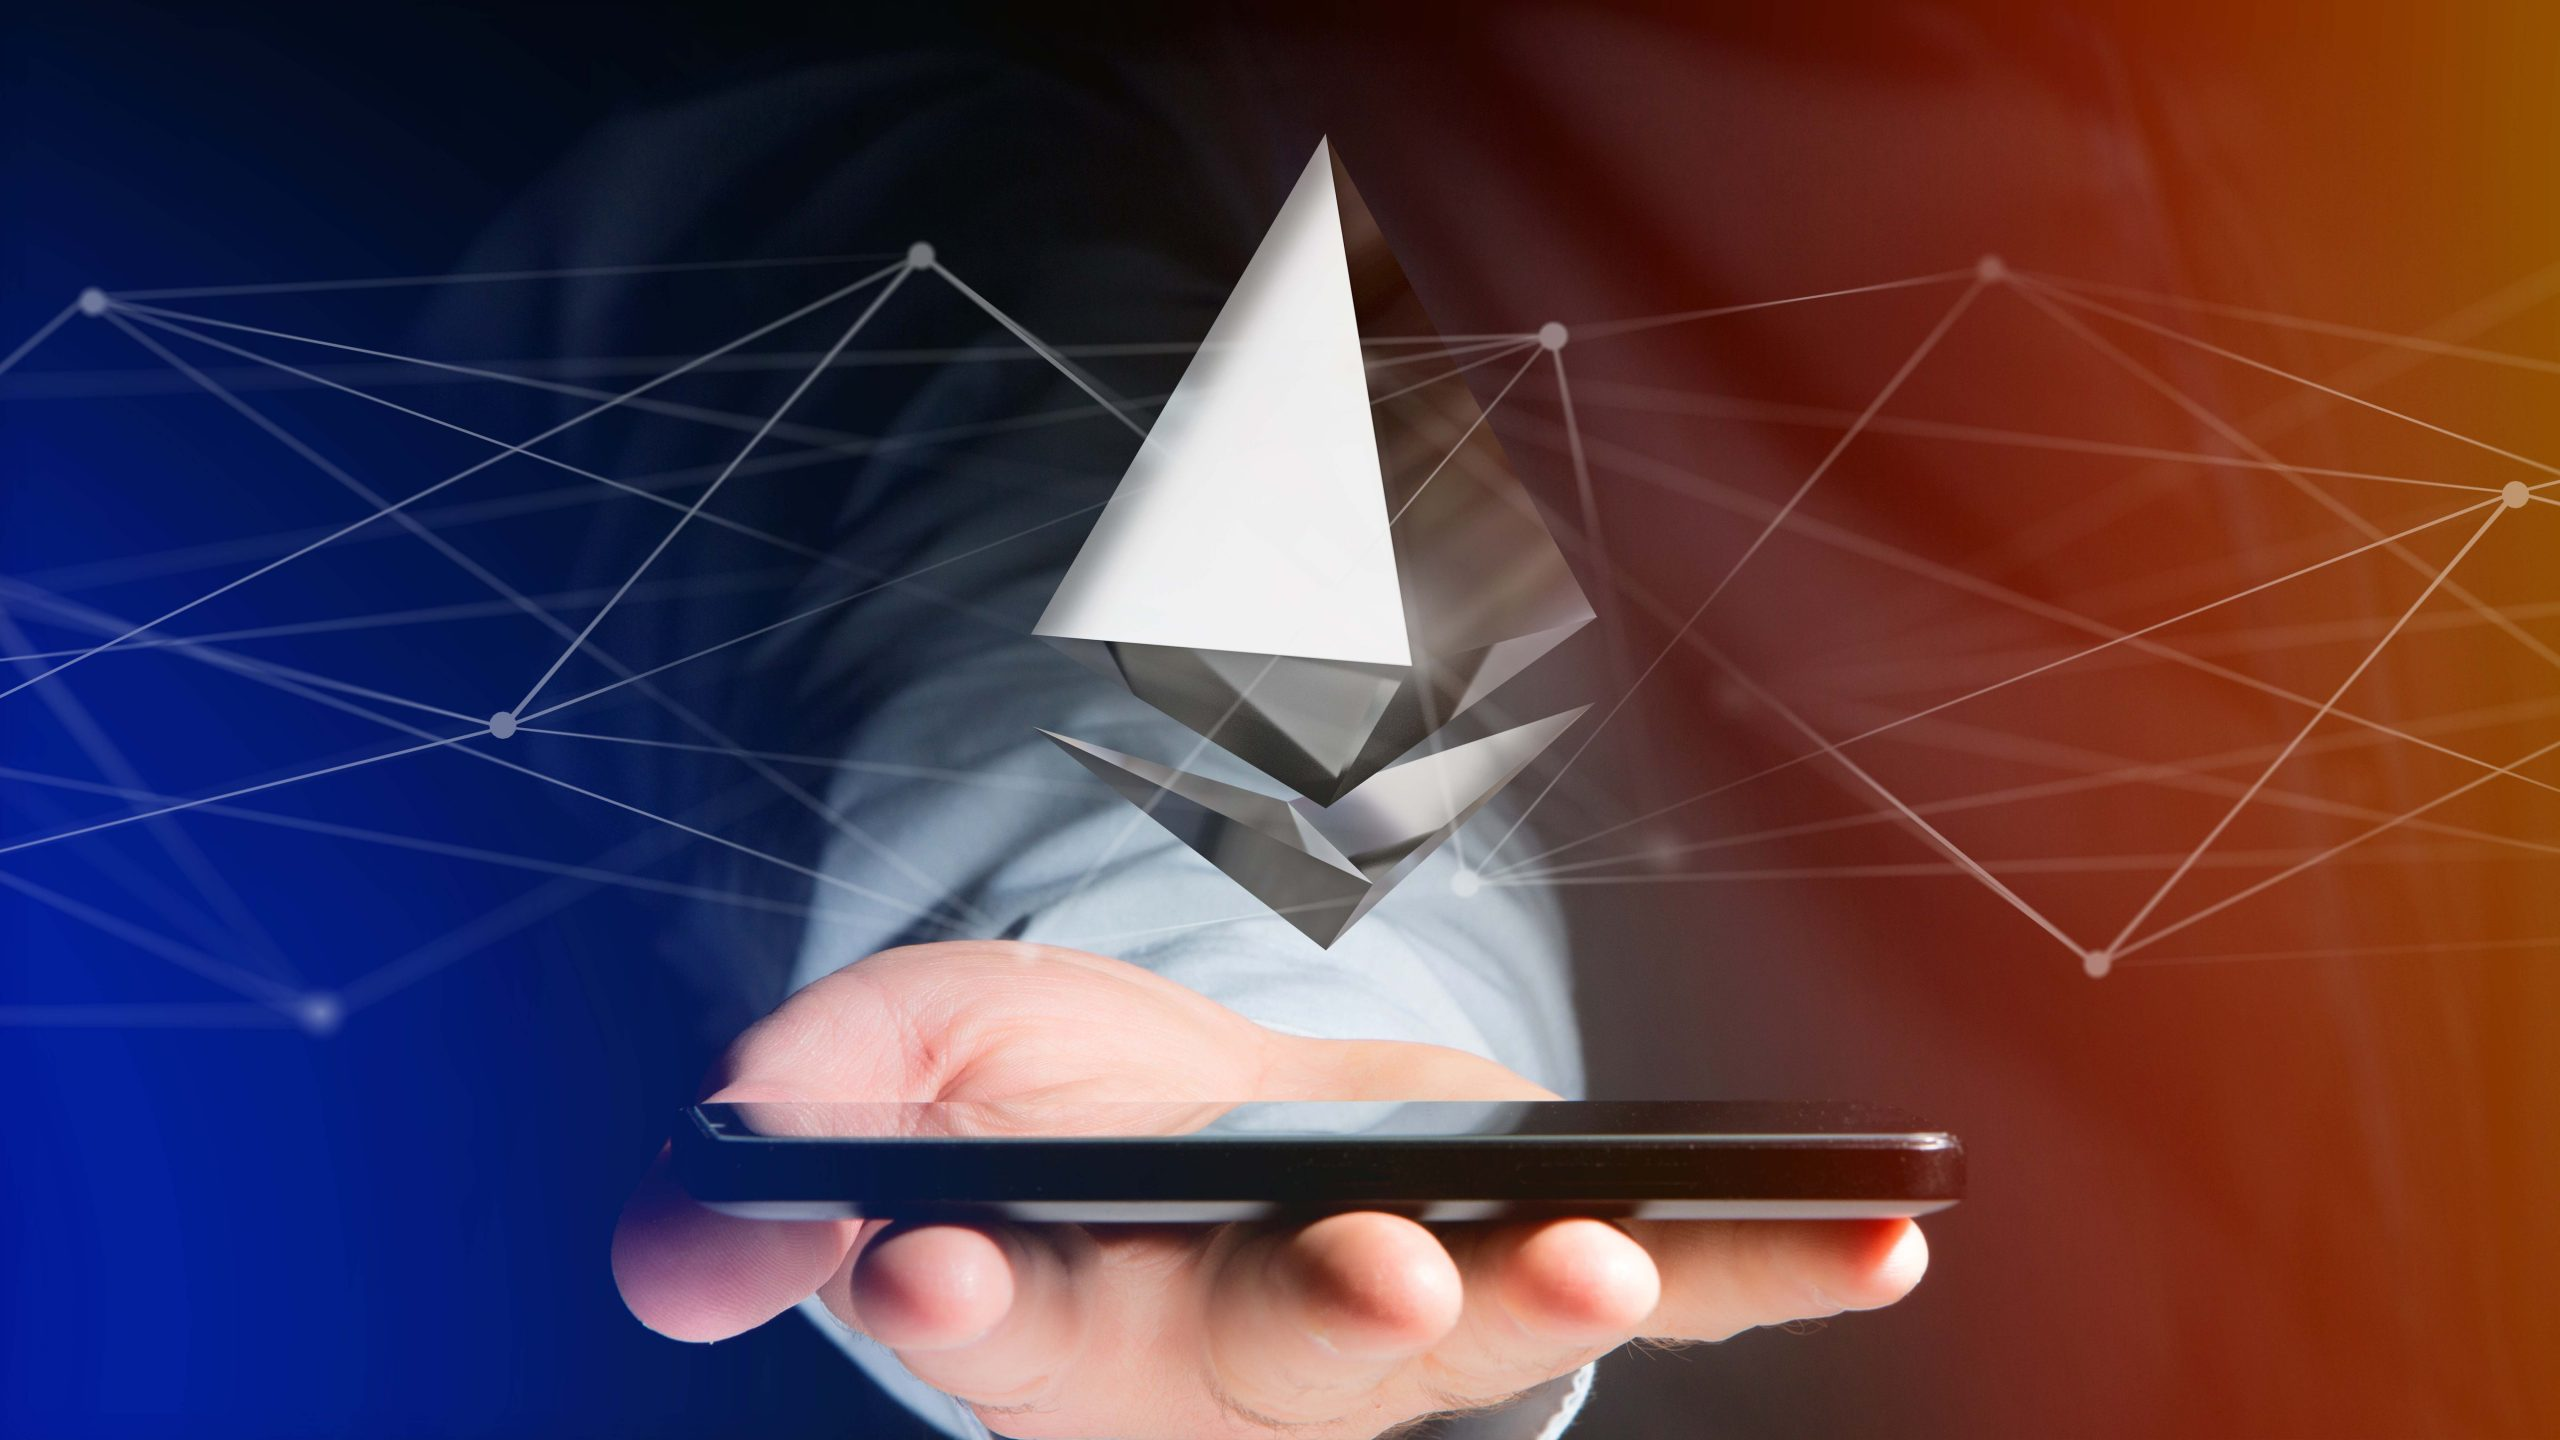 London: Ethereum's software upgrade, that could boost its Price